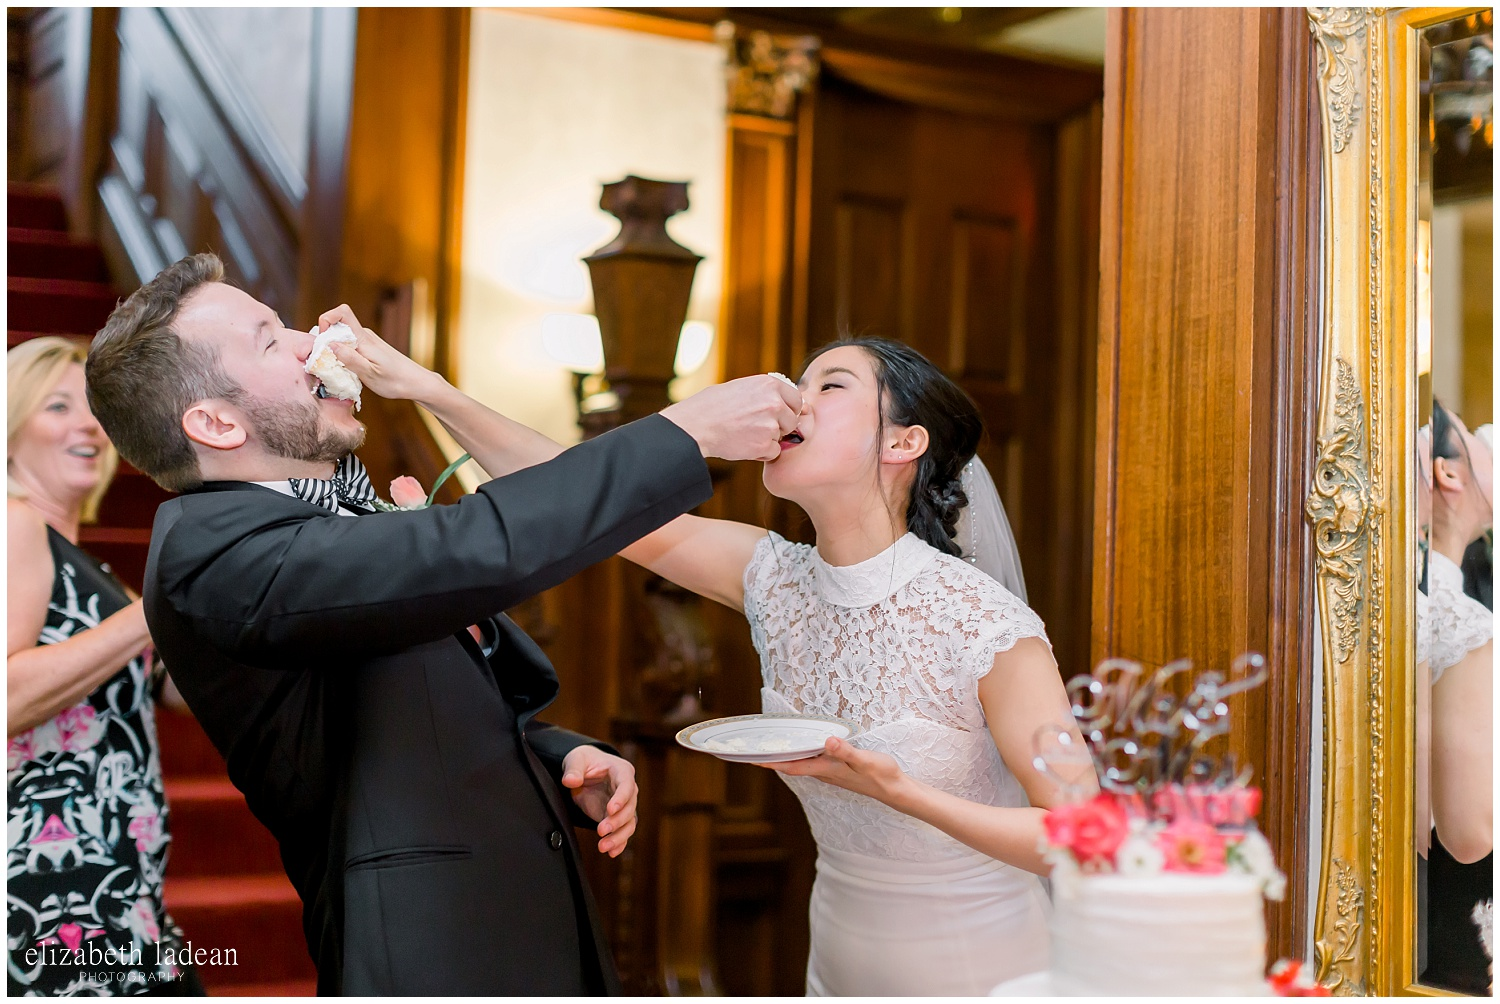 -behind-the-scenes-of-a-wedding-photographer-2018-elizabeth-ladean-photography-photo_3523.jpg